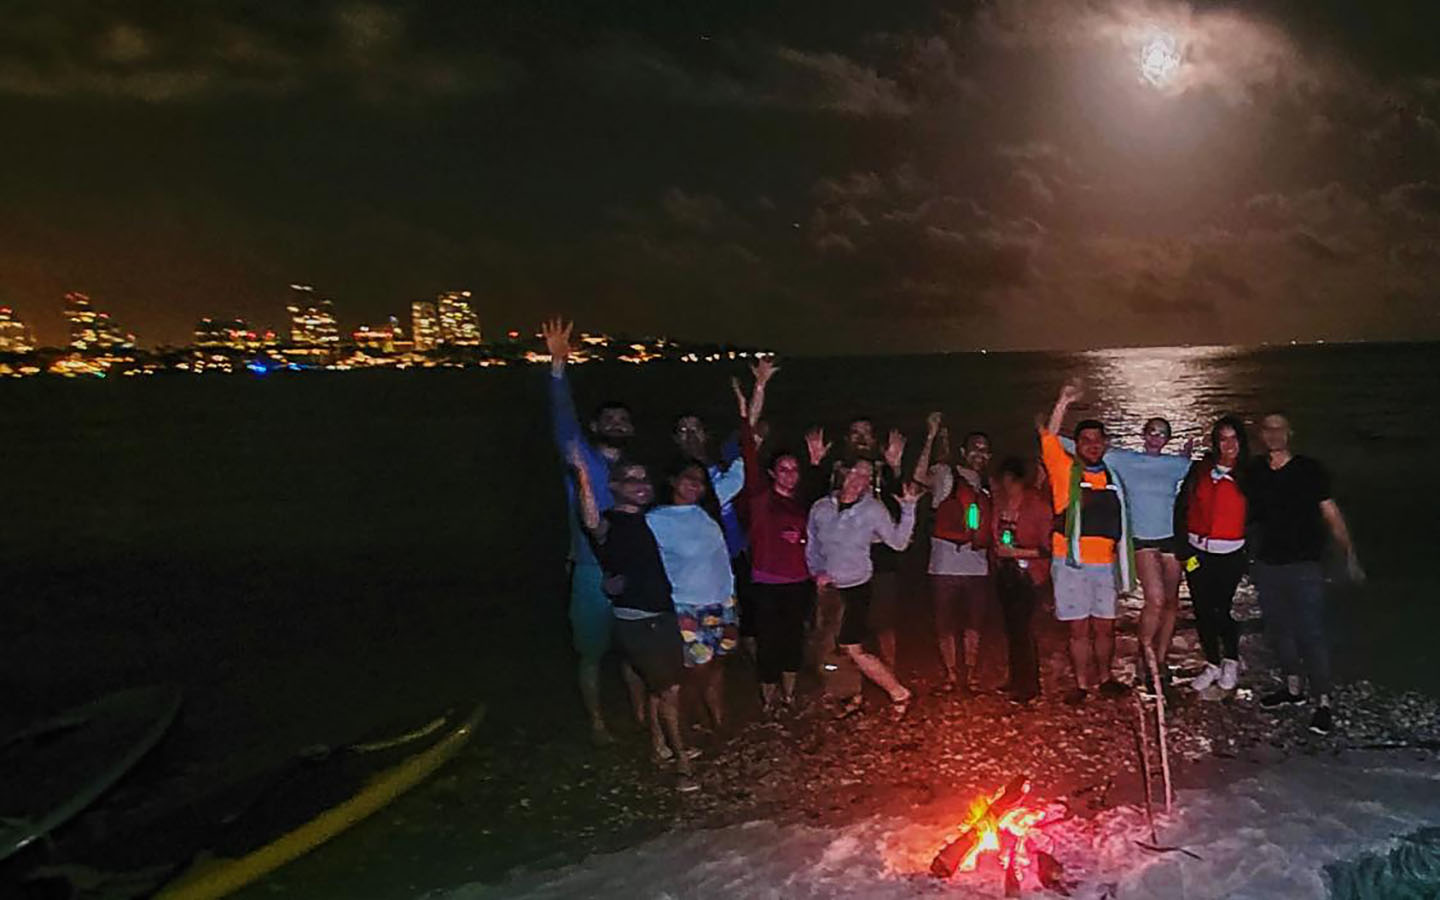 Full Moon Kayak & Paddleboard Tour - April 26th, May 26th and 27th